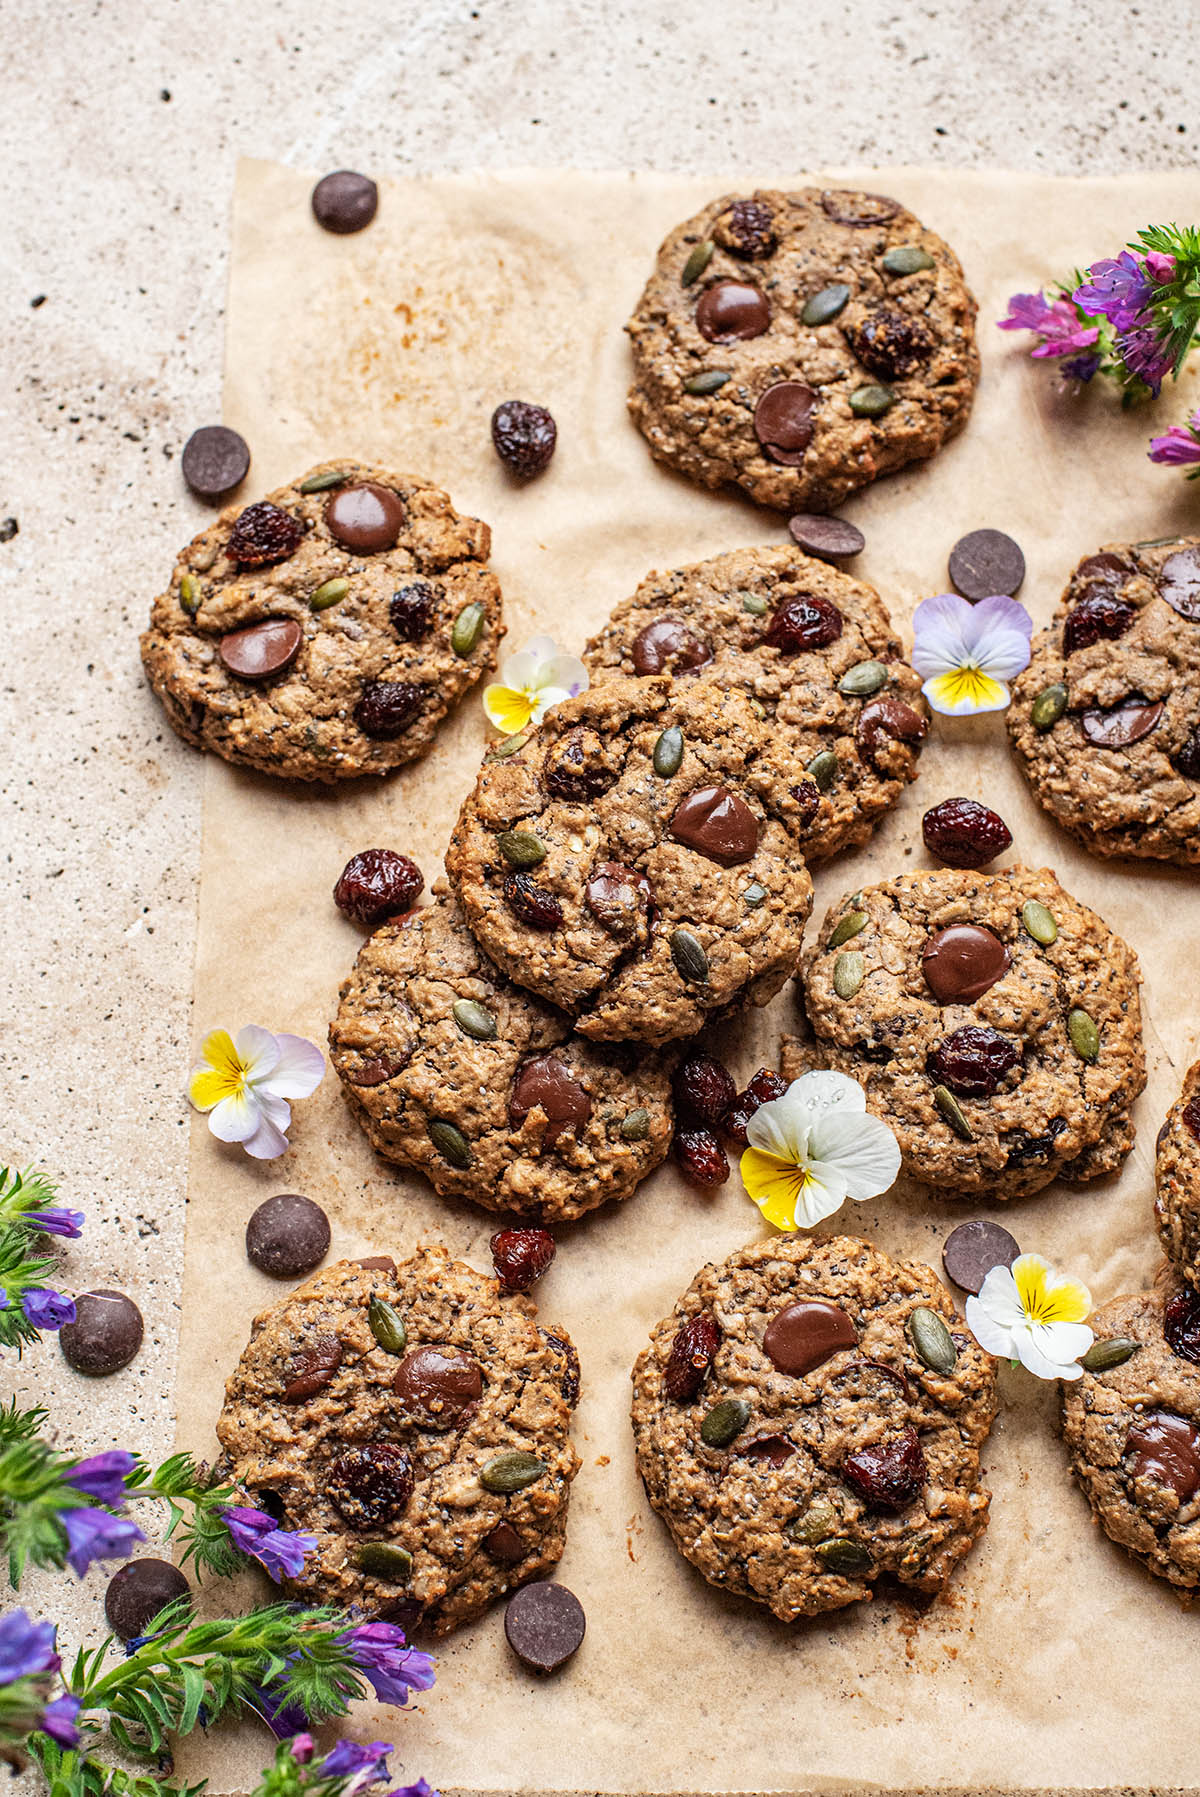 Several trail mix cookies on parchment paper with chocolate and dried cranberries.